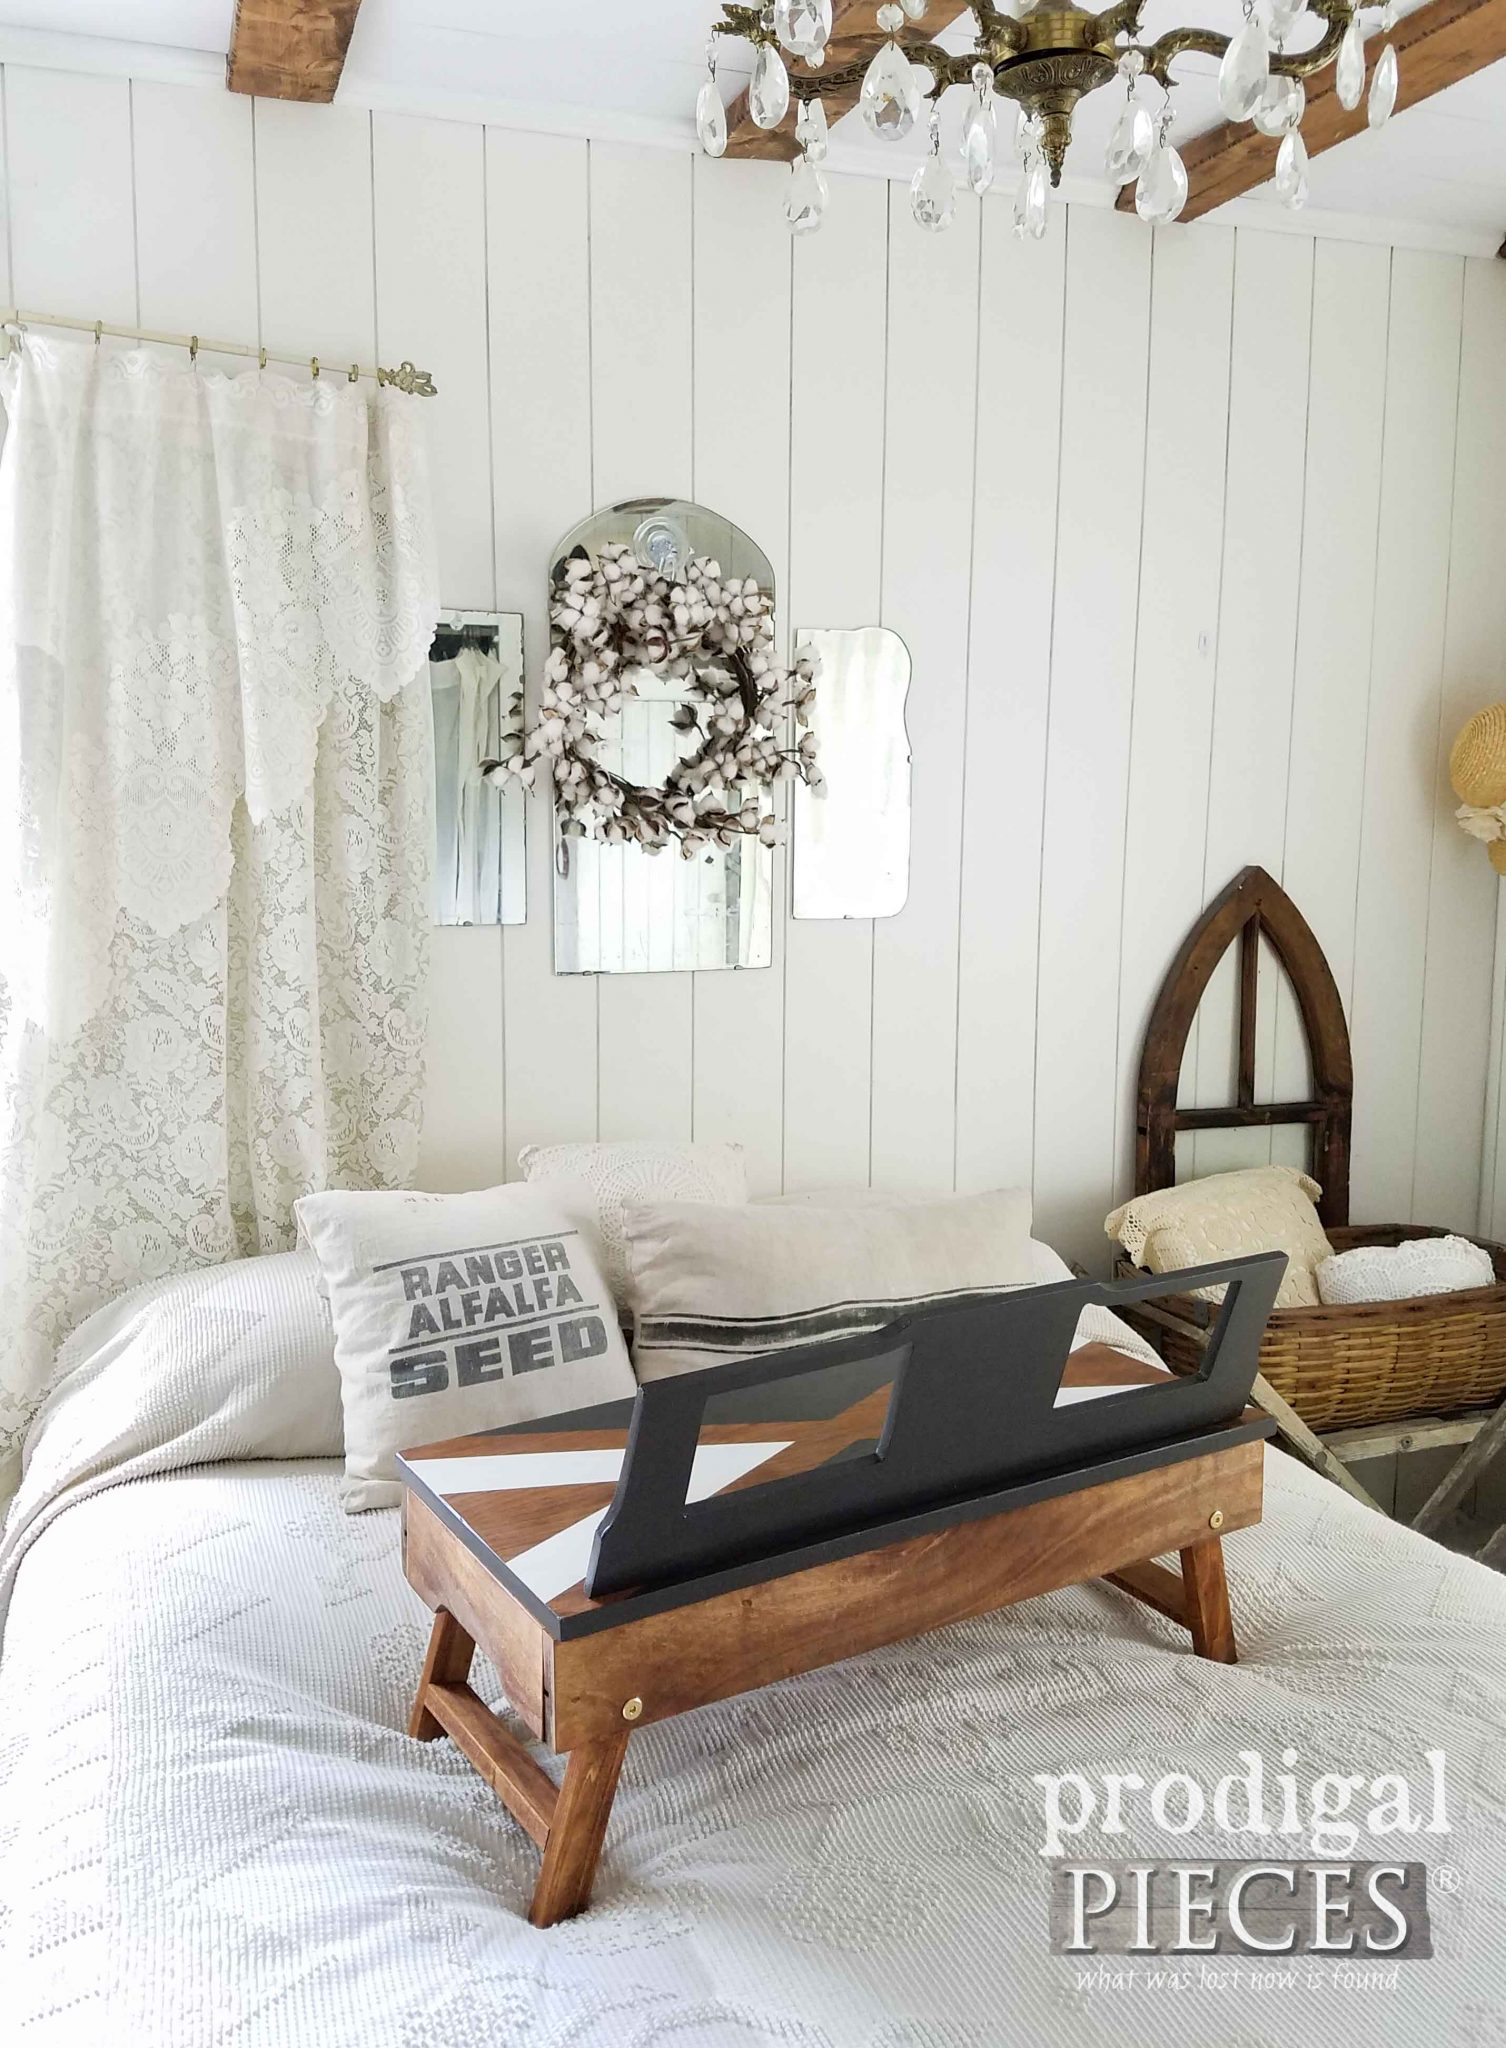 Brilliant Repurposed Piano Bench Lap Desk Prodigal Pieces Caraccident5 Cool Chair Designs And Ideas Caraccident5Info